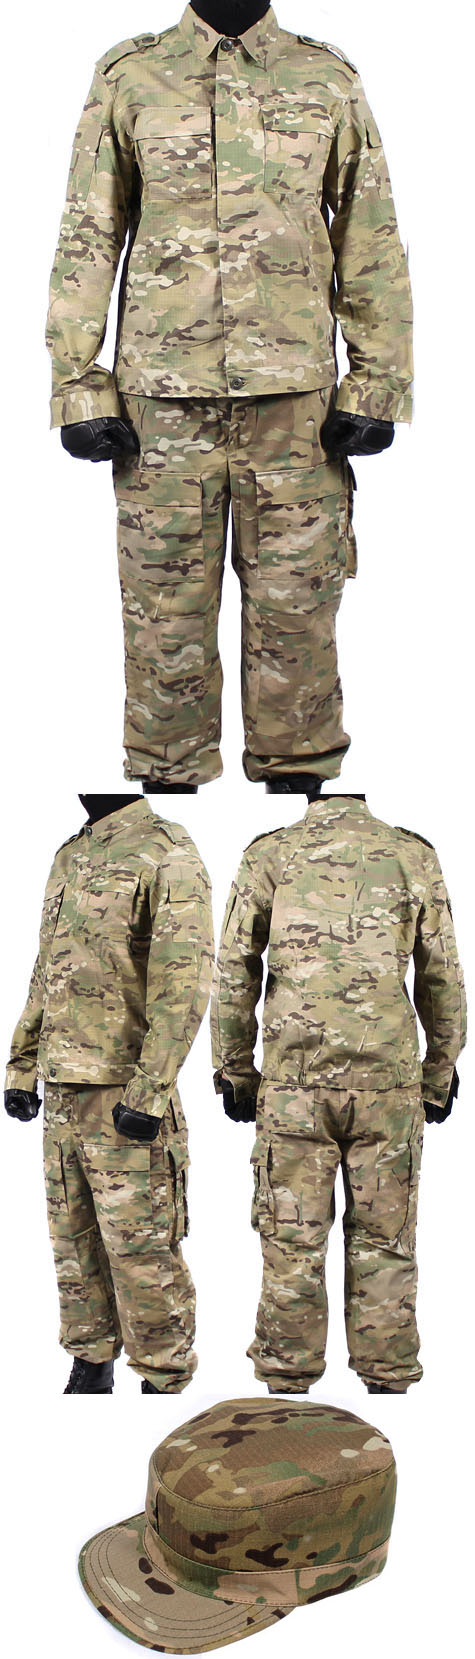 Modern tactical camo SKLON uniform MULTICAM